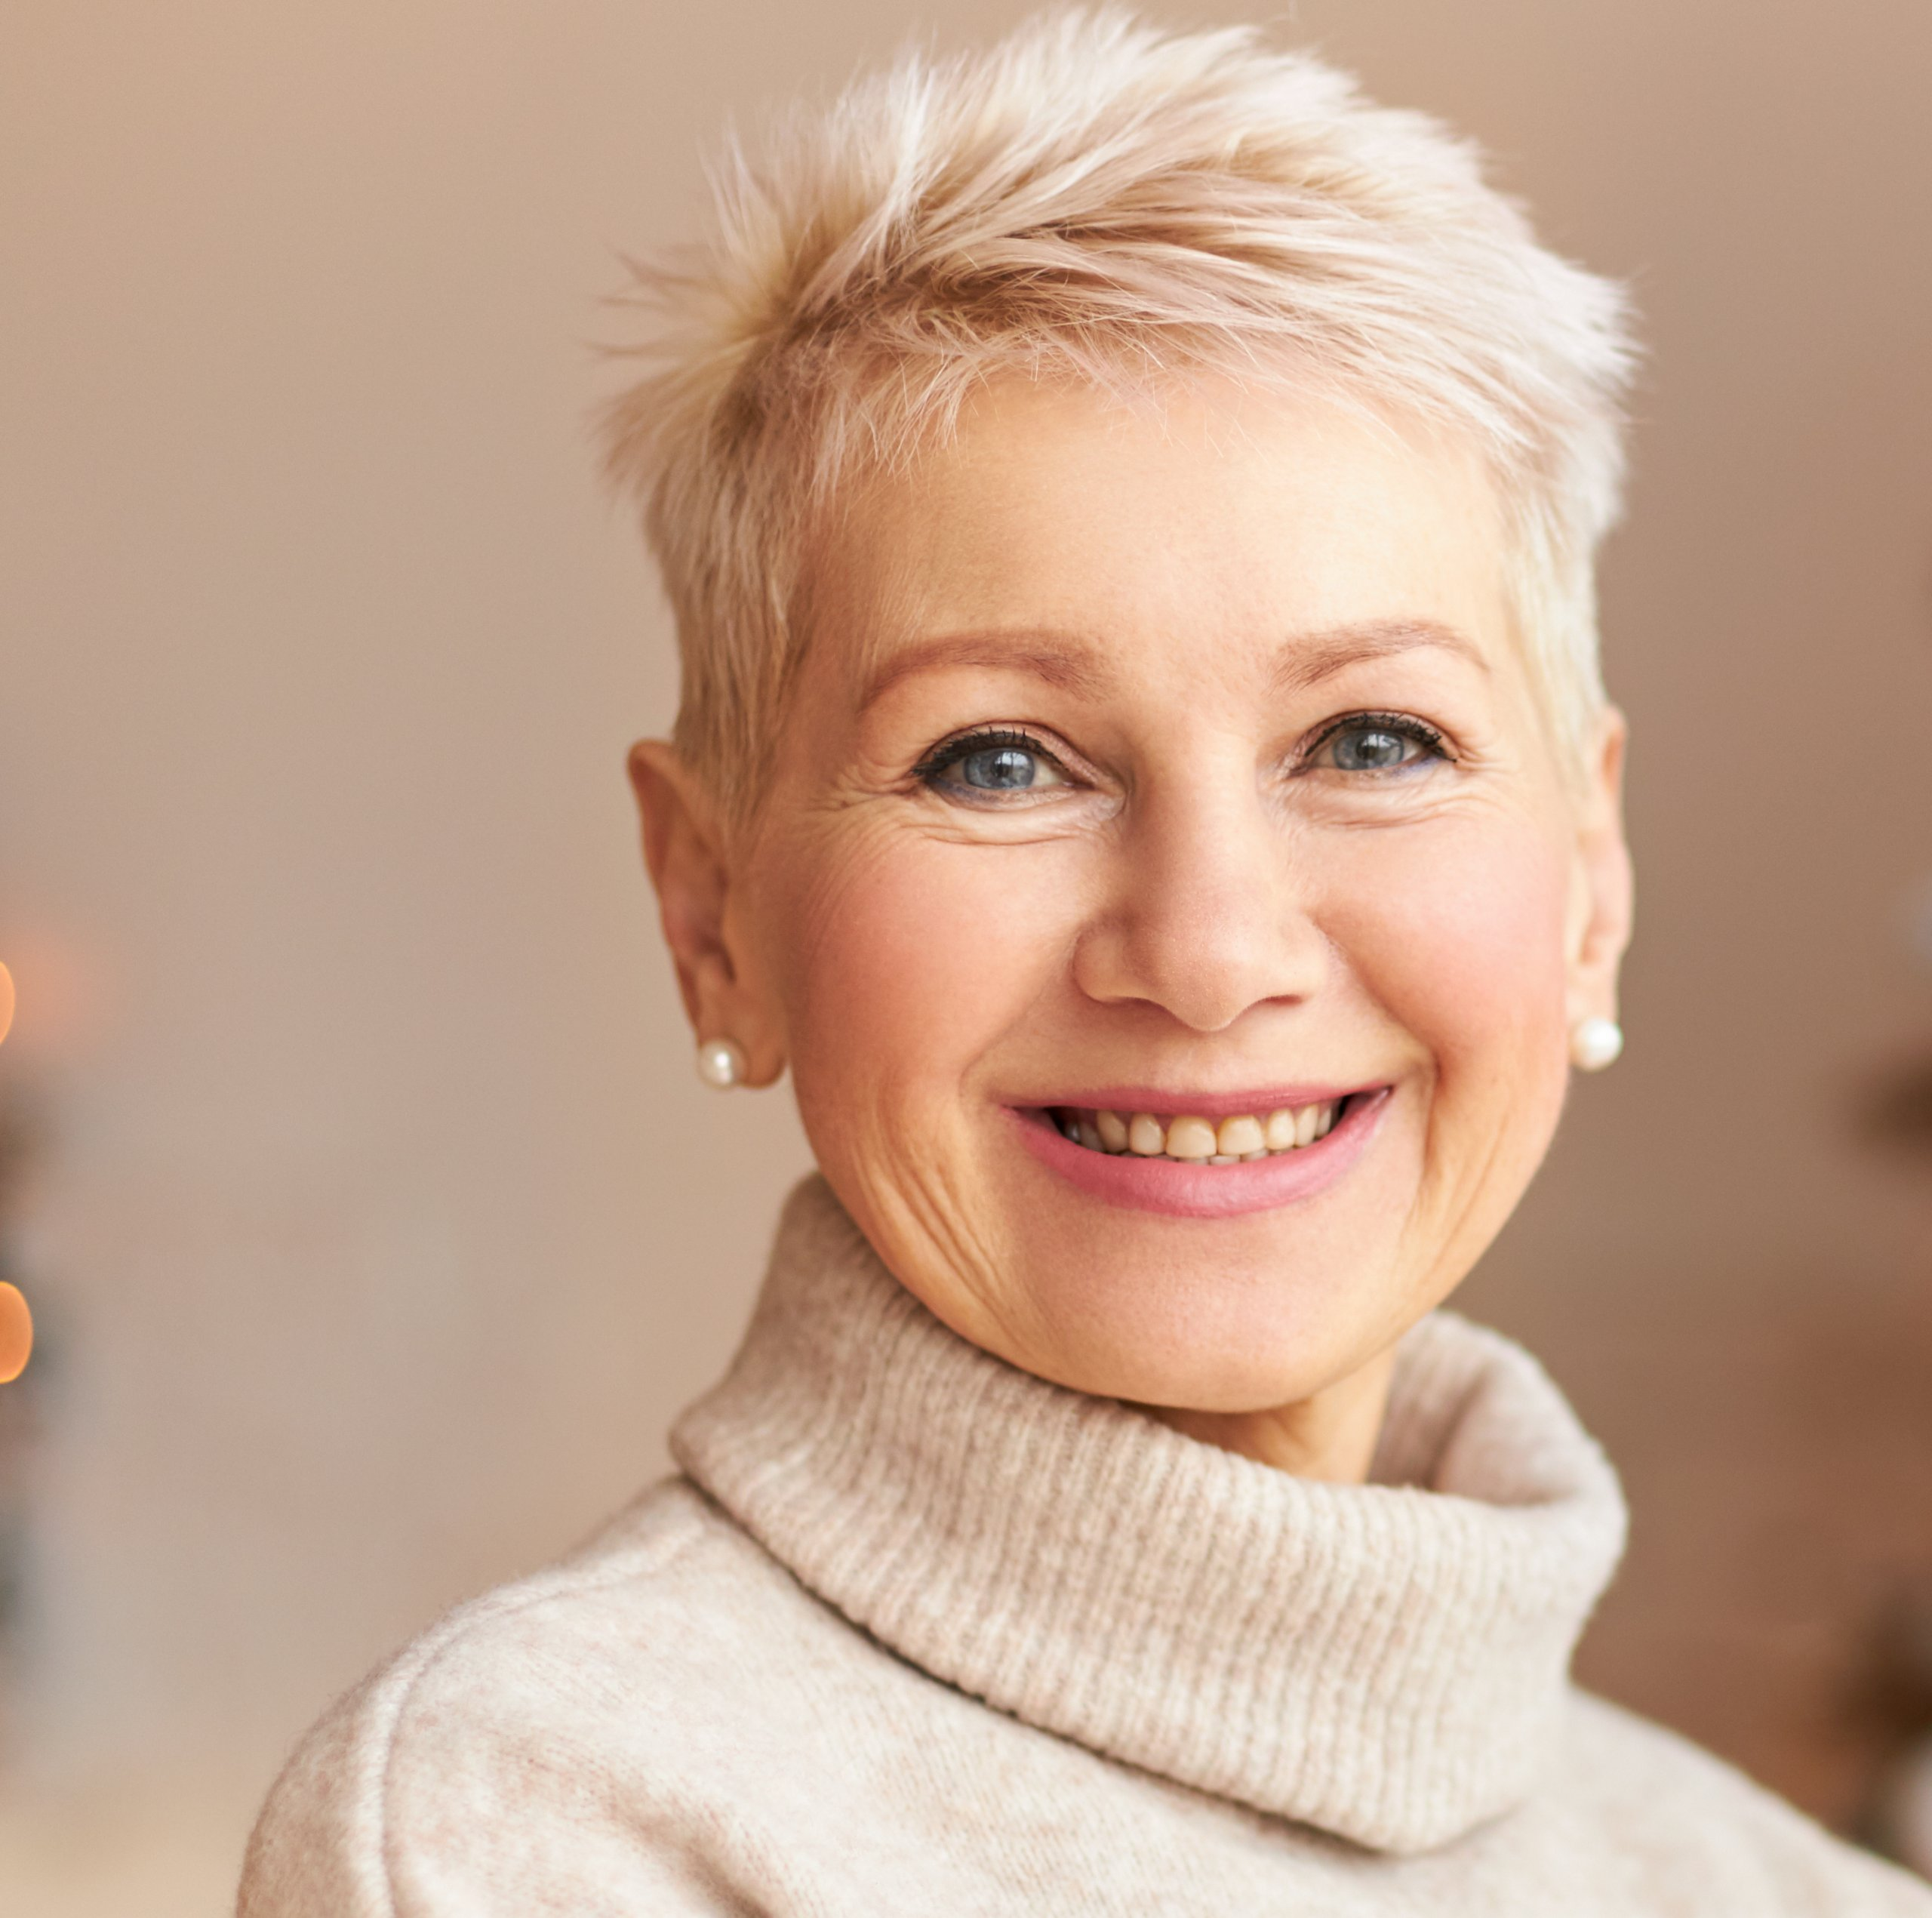 Season, winter, holiday and celebration concept. Picture of cheerful middle aged lady with short haired and broad radiant smile enjoying preparations for Xmas, posing at decorated pine tree at home